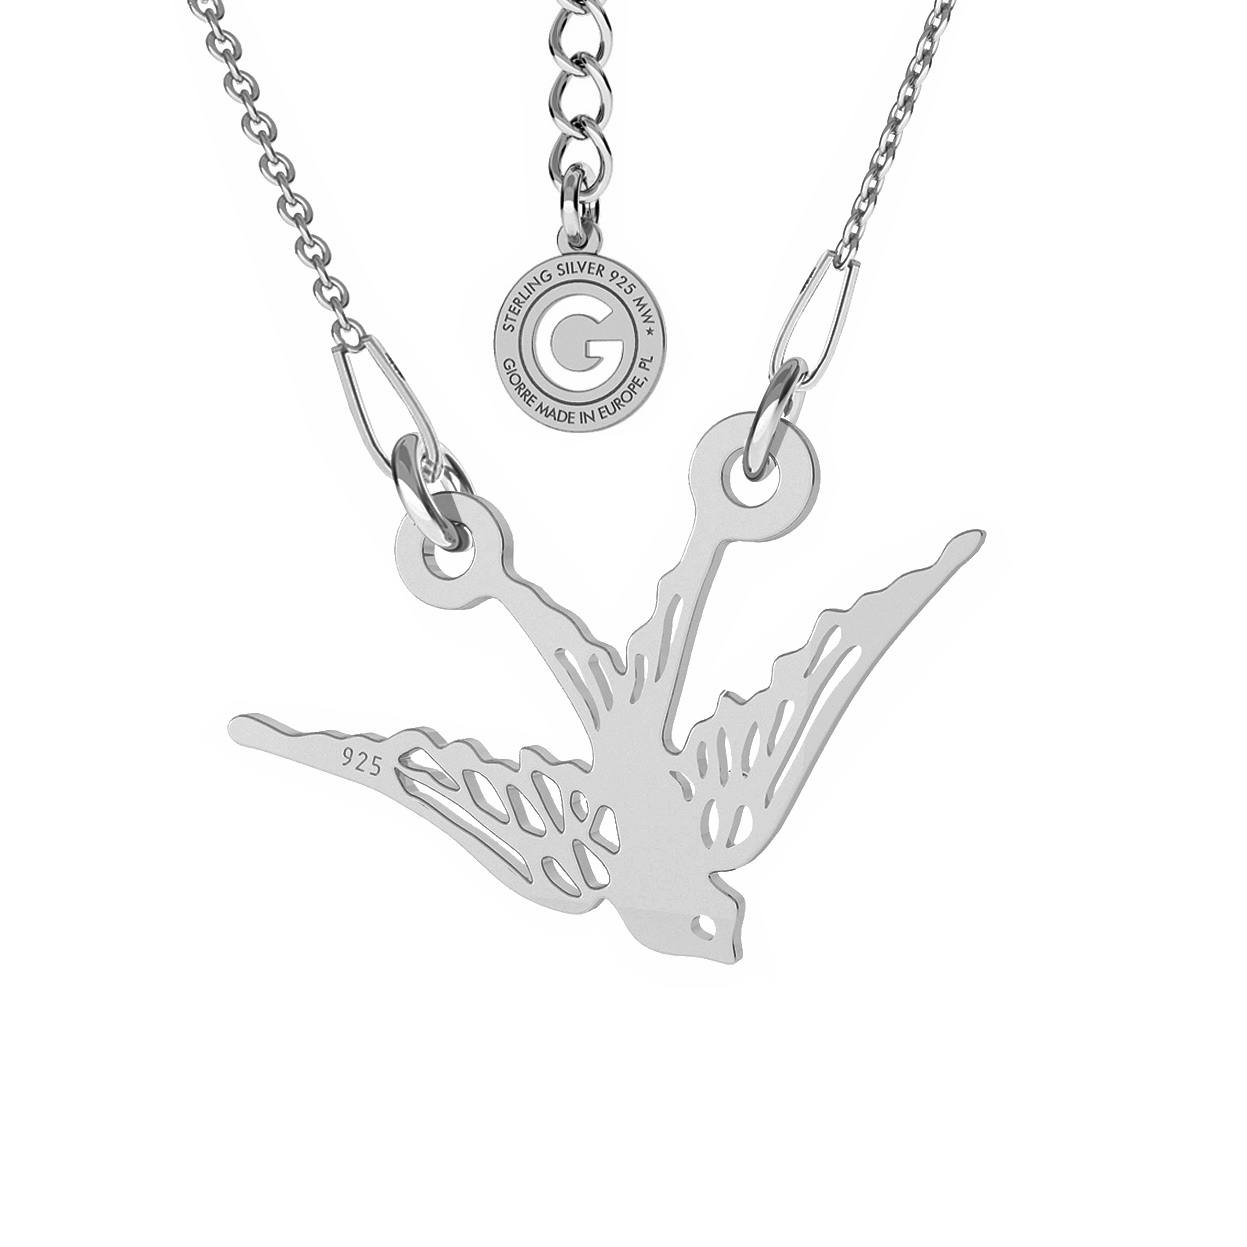 BIRD NECKLACE STERLING SILVER 925